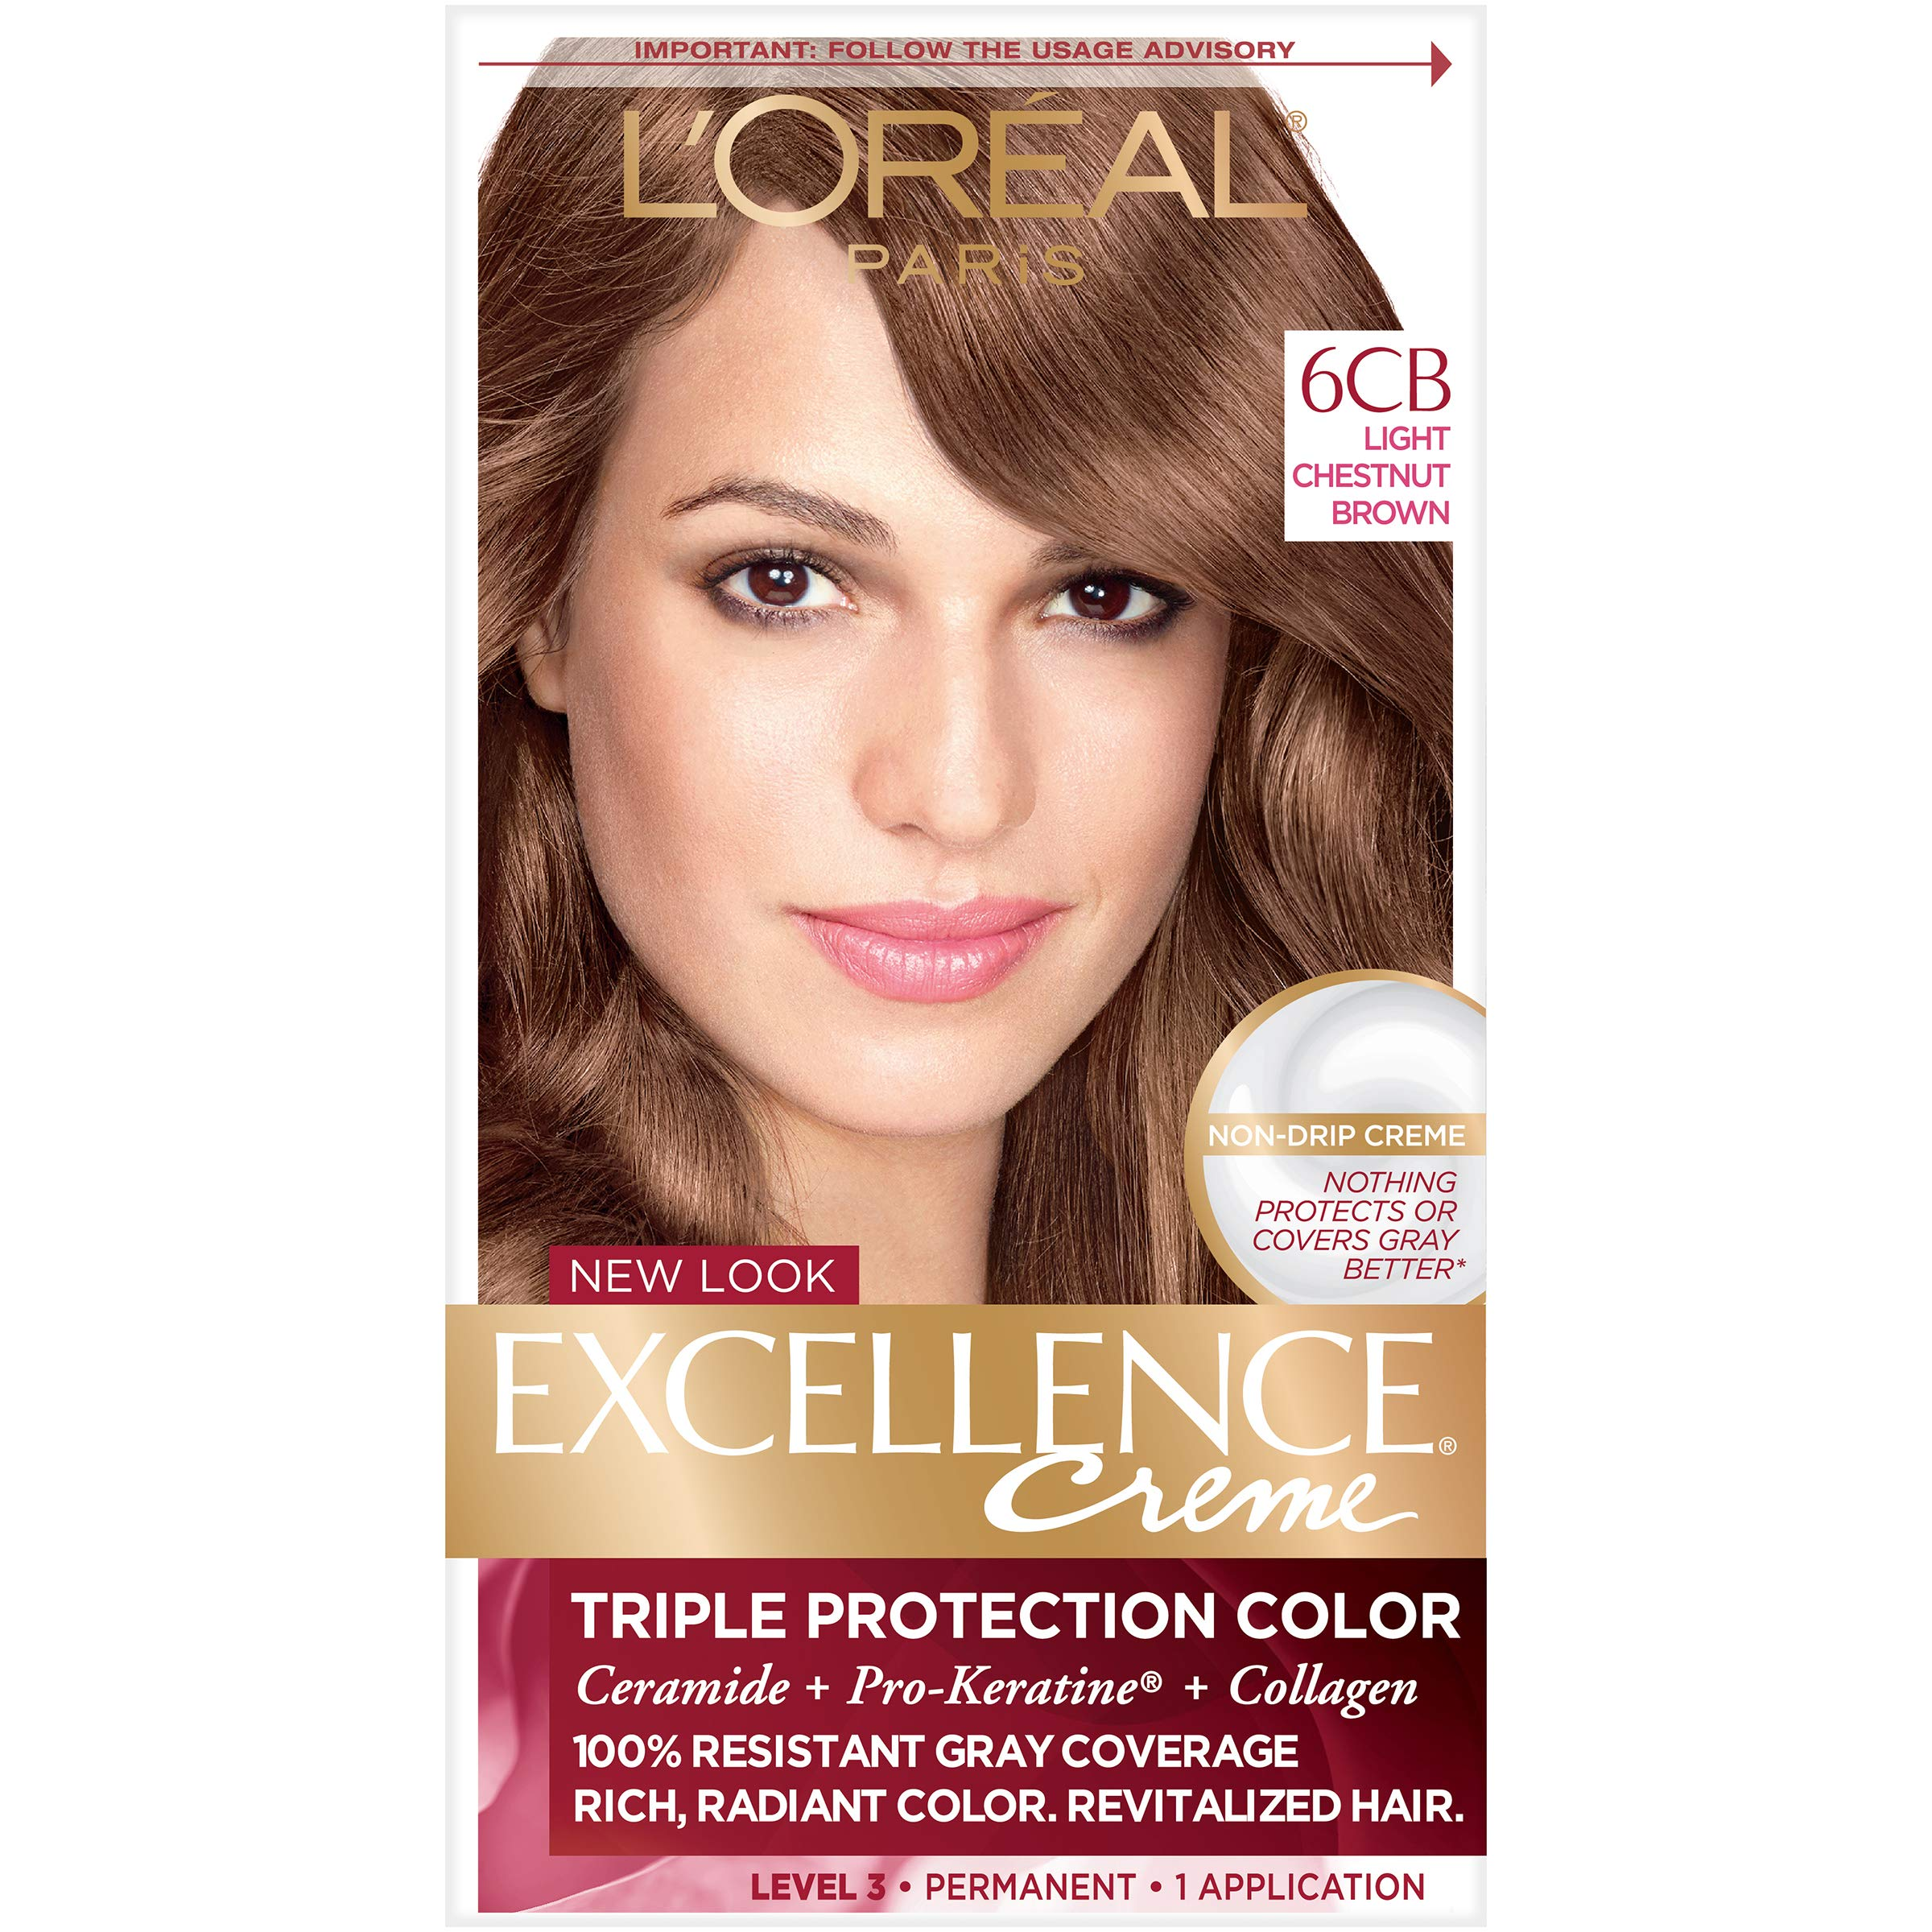 LOreal Paris Excellence Creme Hair Color, 6CB Light Chestnut Brown  Amazon